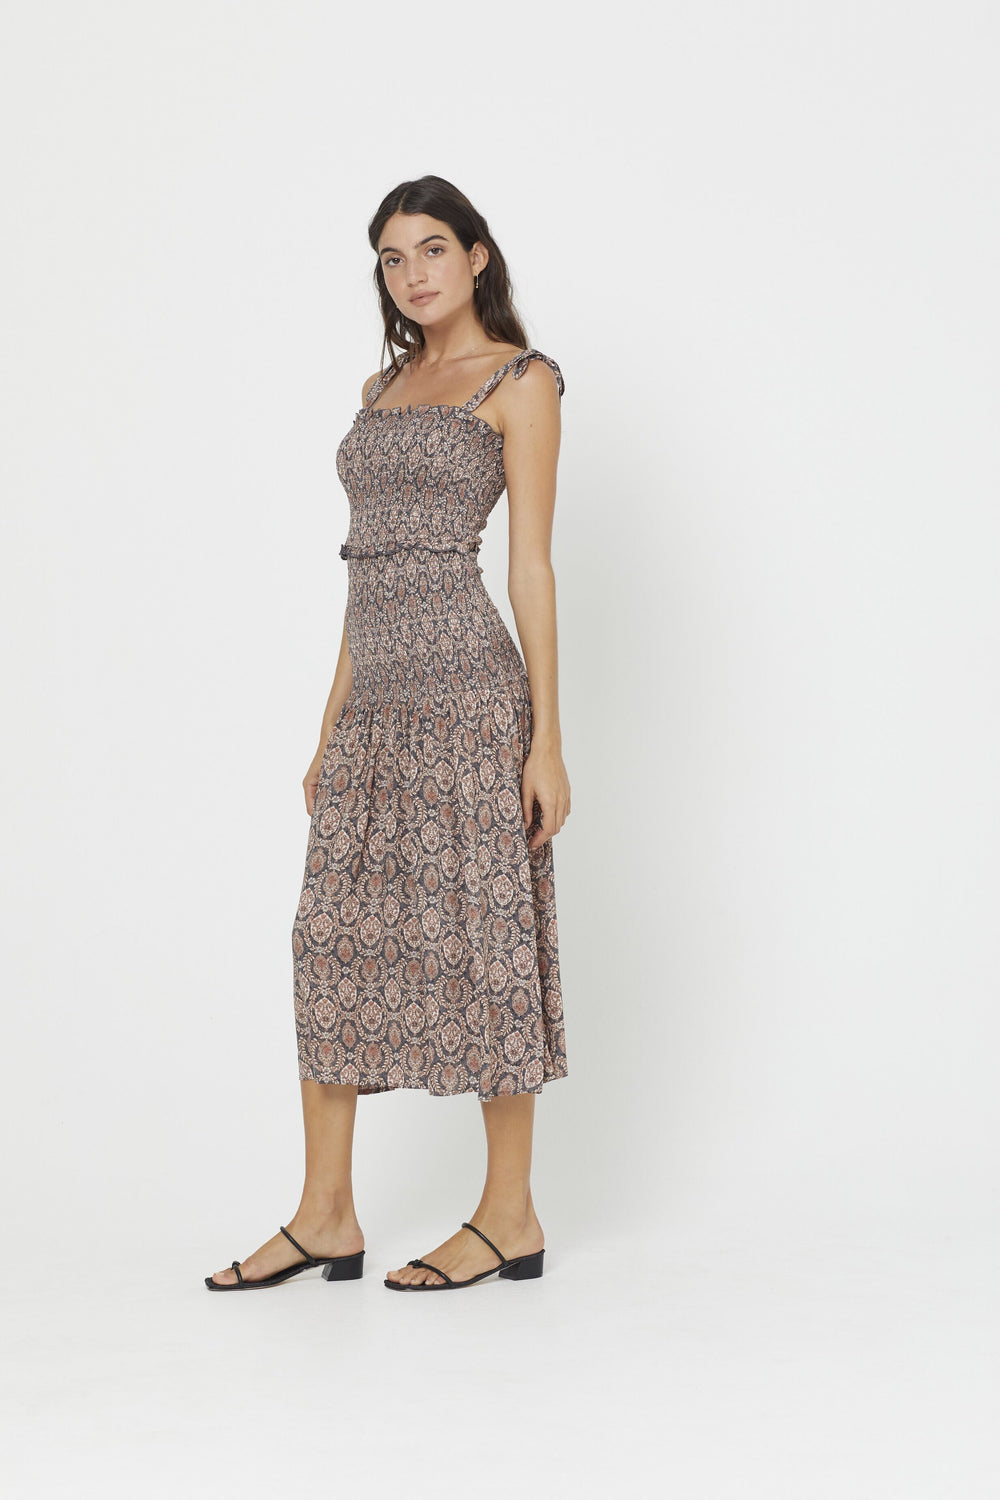 The Auguste Montague Bennett Shirred Midi Dress in Ink